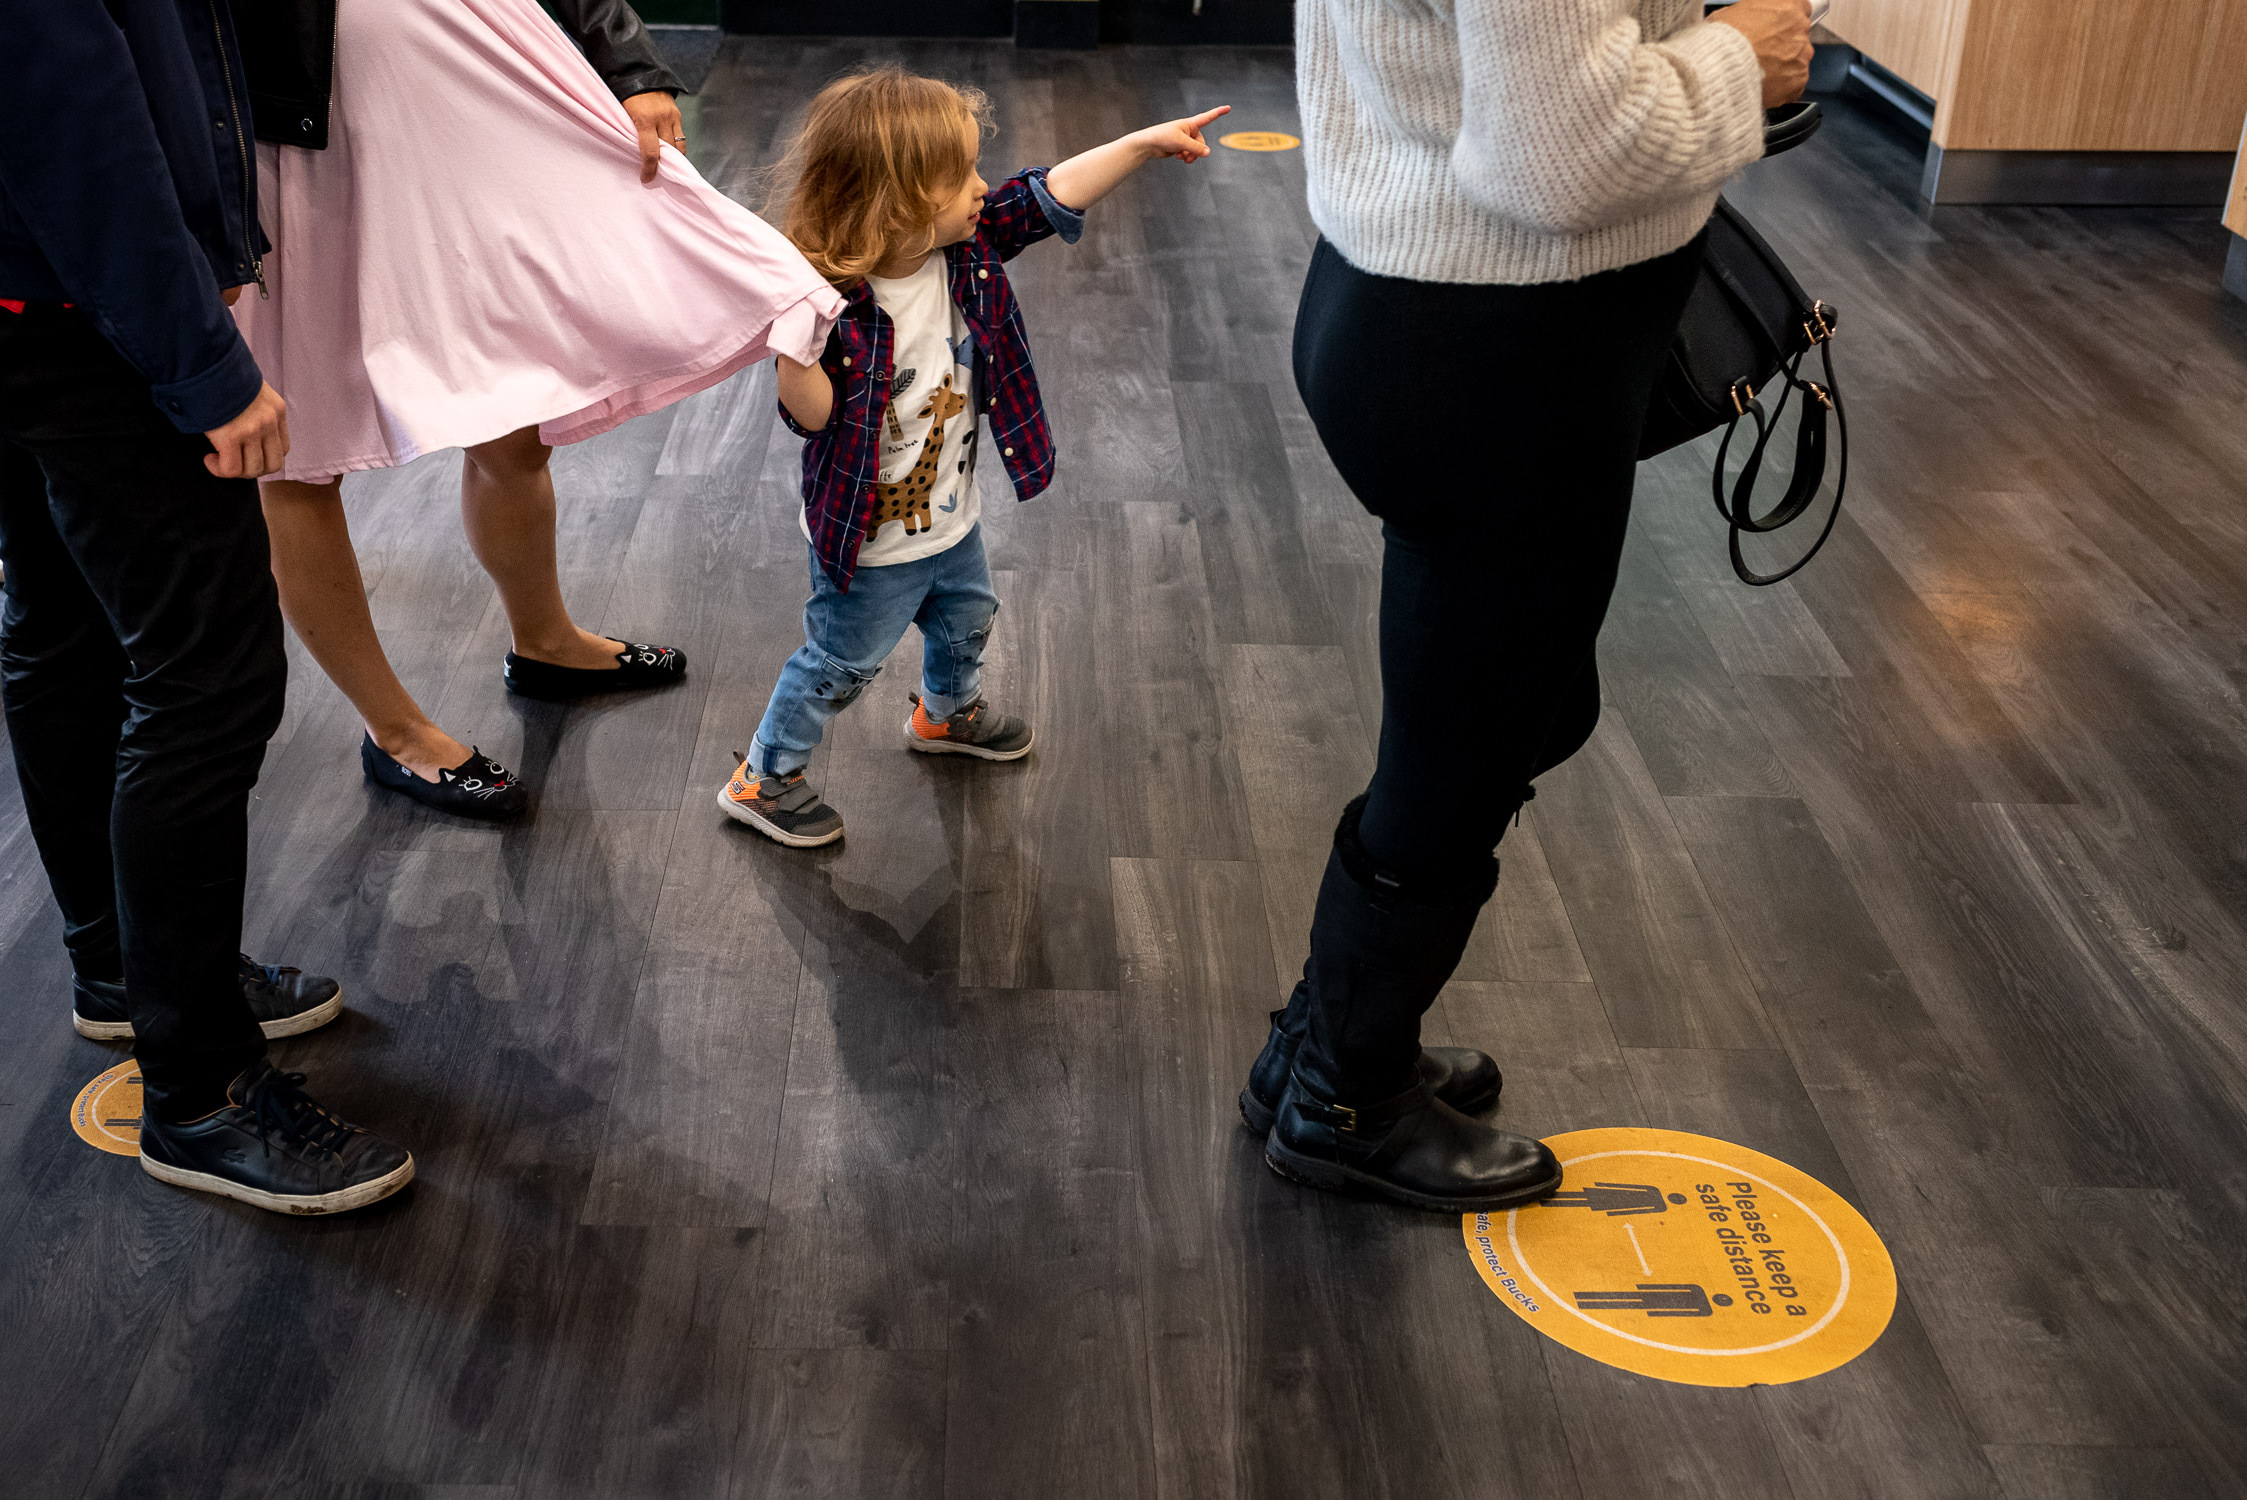 socially distanced sign on floor with family